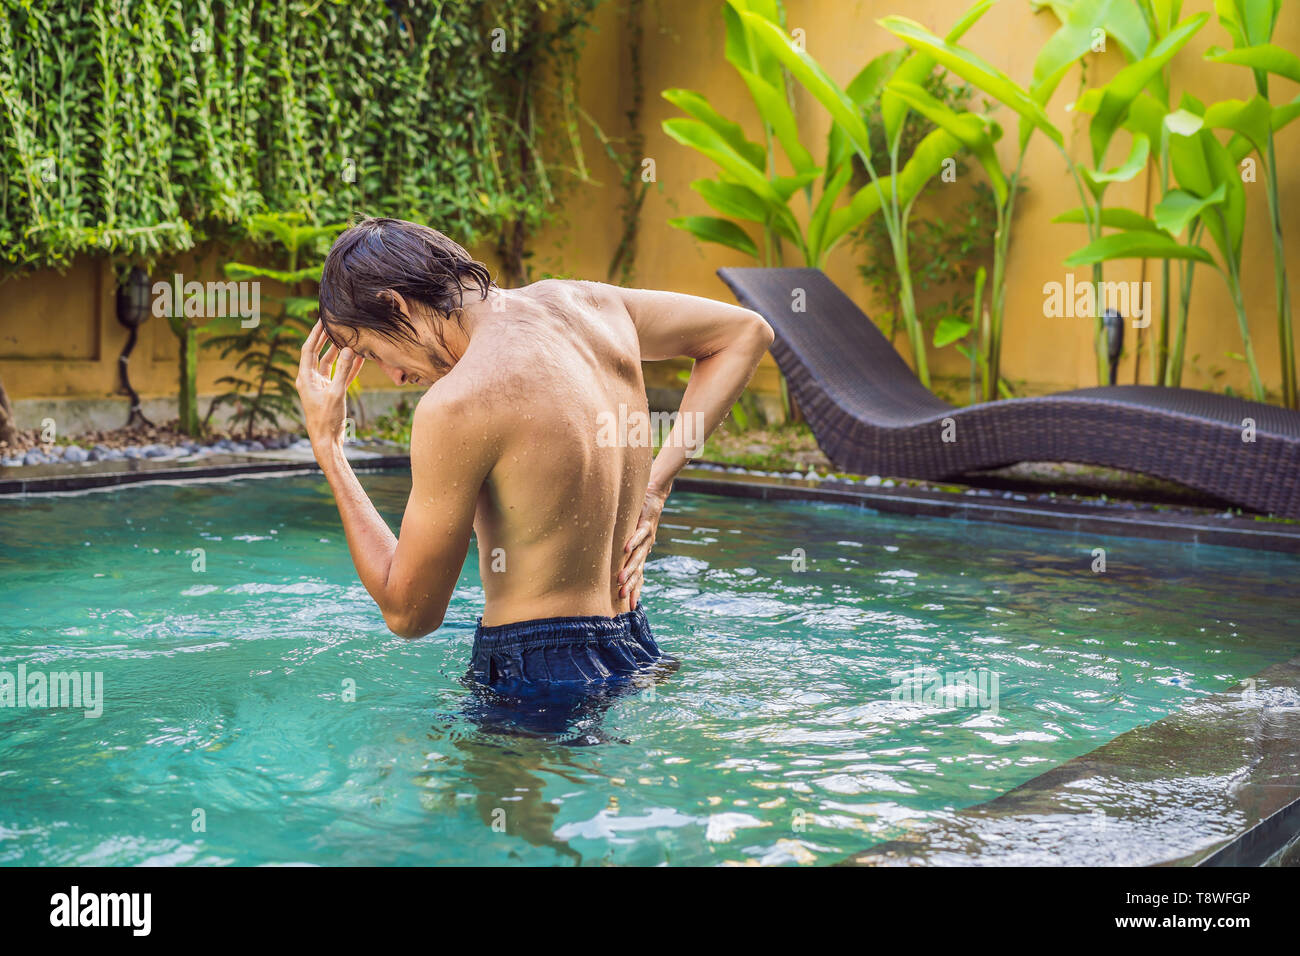 Men's back hurts against the backdrop of the pool. Pool helps with back pain - Stock Image